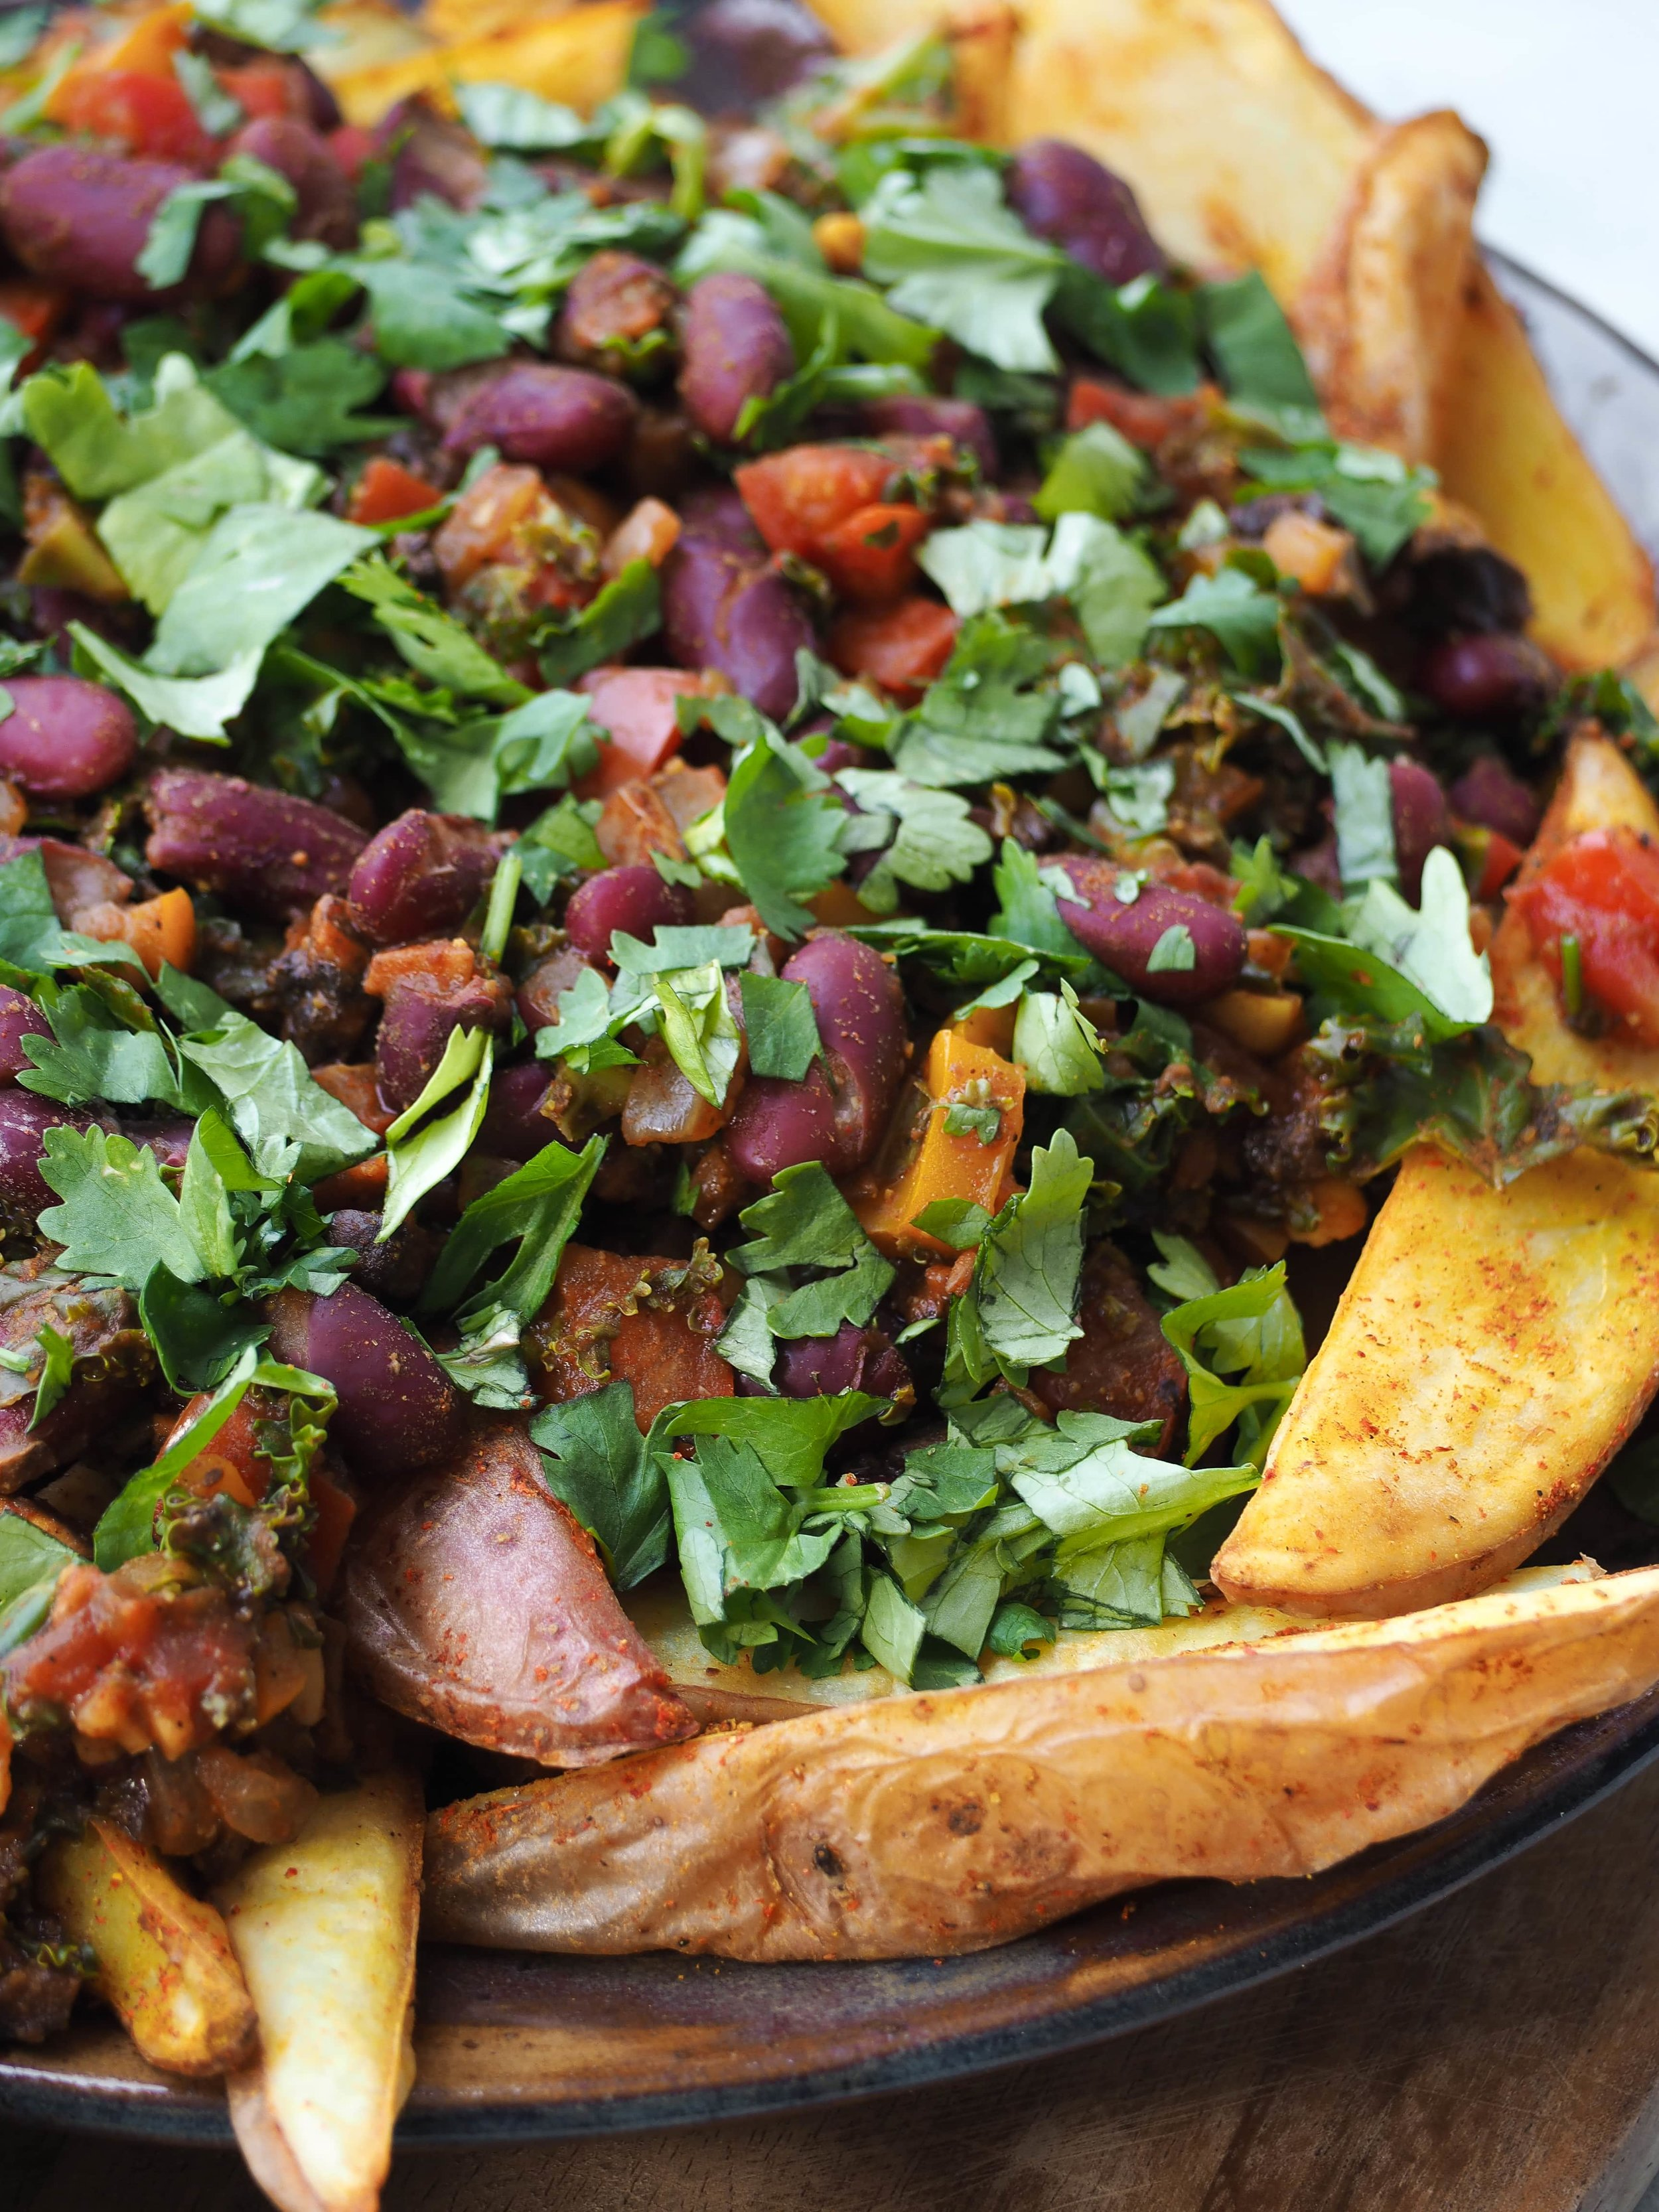 chipotle-beans-and-homemade-fries-oil-free-vegan-peasful-plate